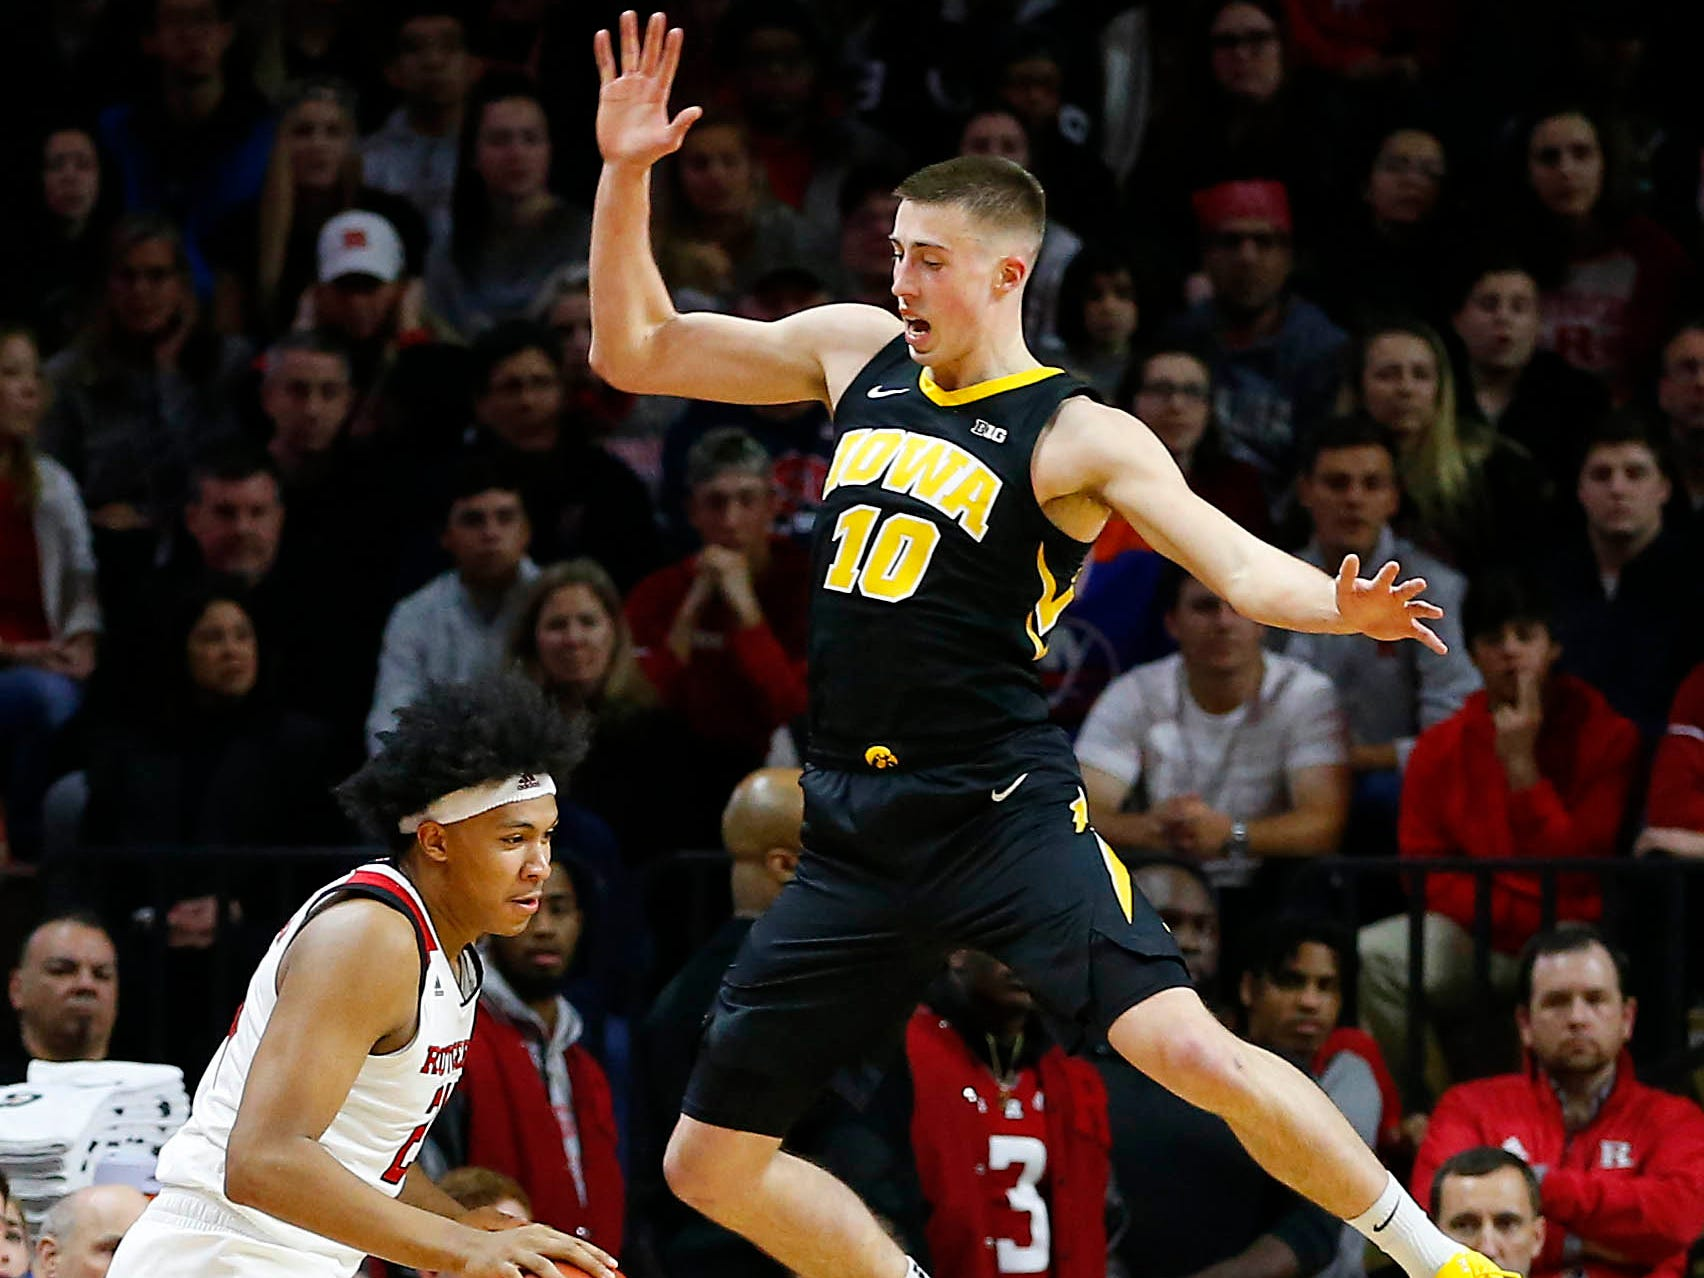 Iowa Hawkeyes guard Joe Wieskamp (10) defends against Rutgers Scarlet Knights forward Ron Harper Jr. (24) during the first half at Rutgers Athletic Center (RAC). Mandatory Credit: Noah K. Murray-USA TODAY Sports